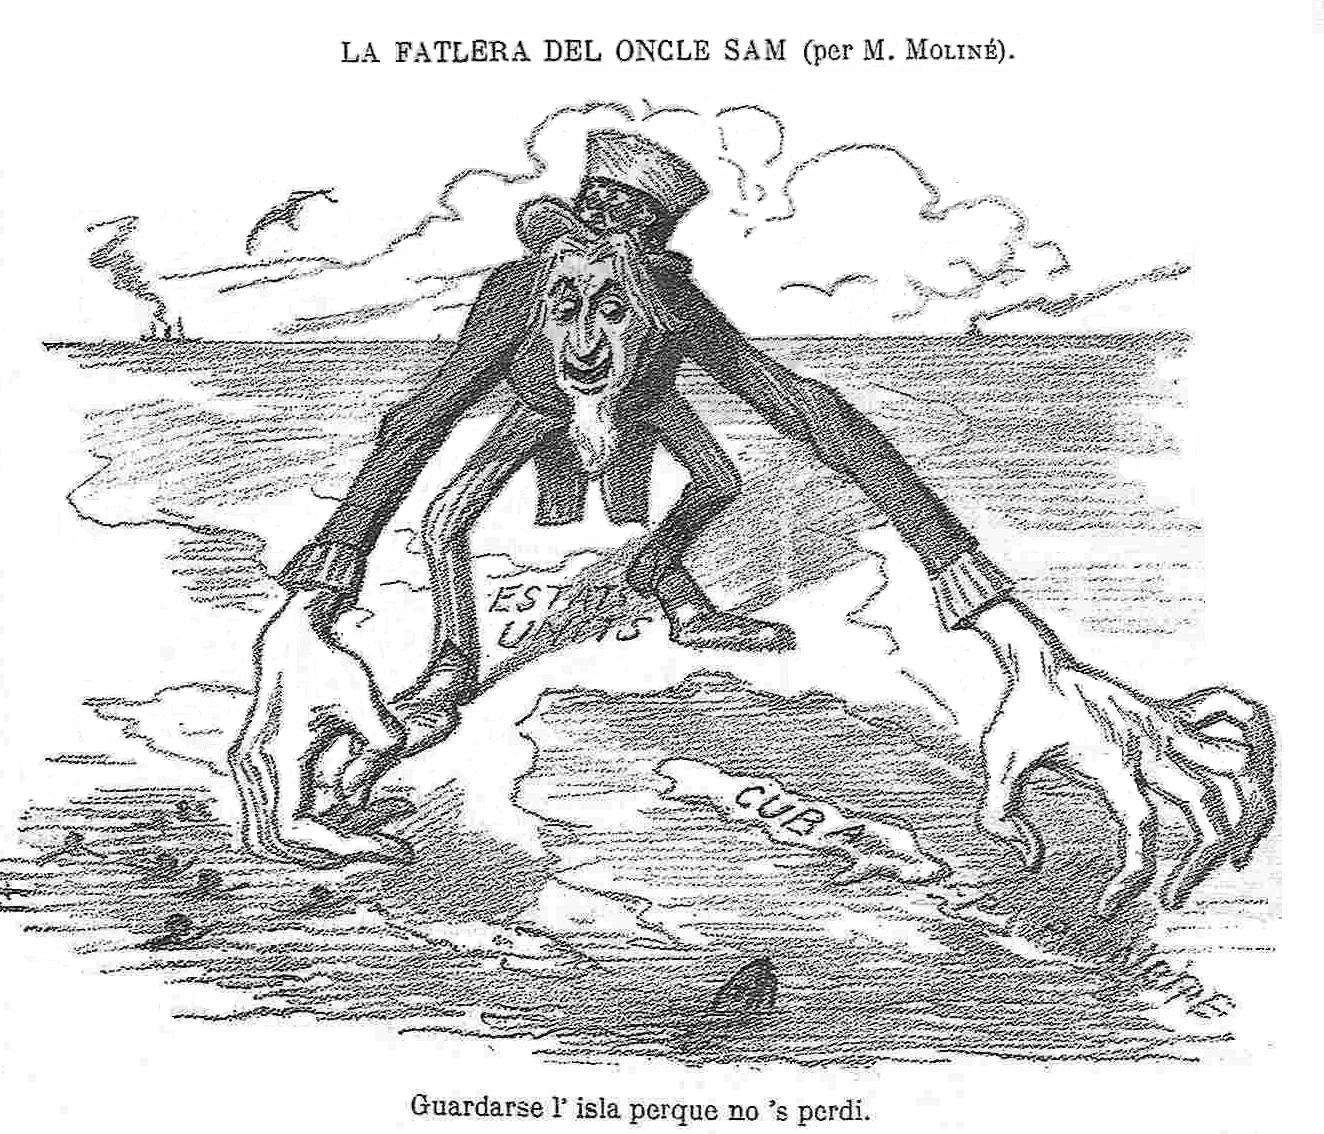 Geopolitical Cartoons: Depictions of the Spanish-American